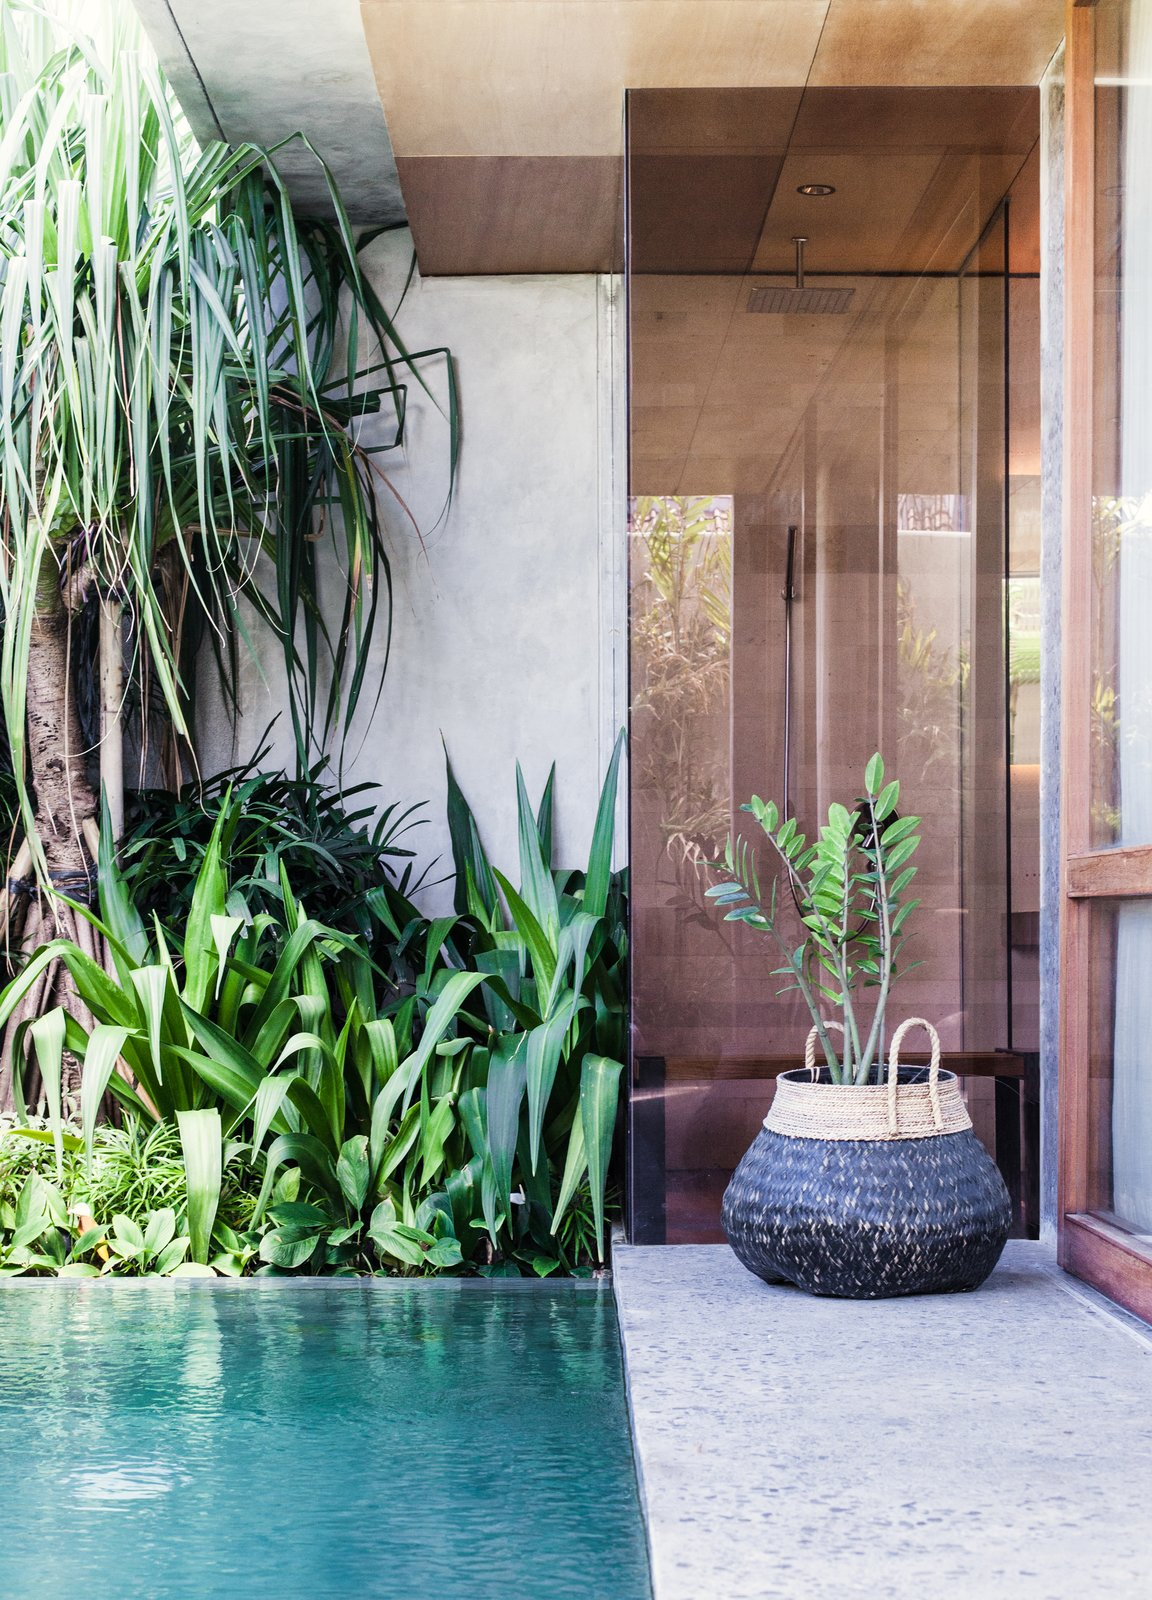 Photo 10 of 12 in Go Beyond the Basics in an Australian Fashion Designer's Surf-Inspired Bali Hotel